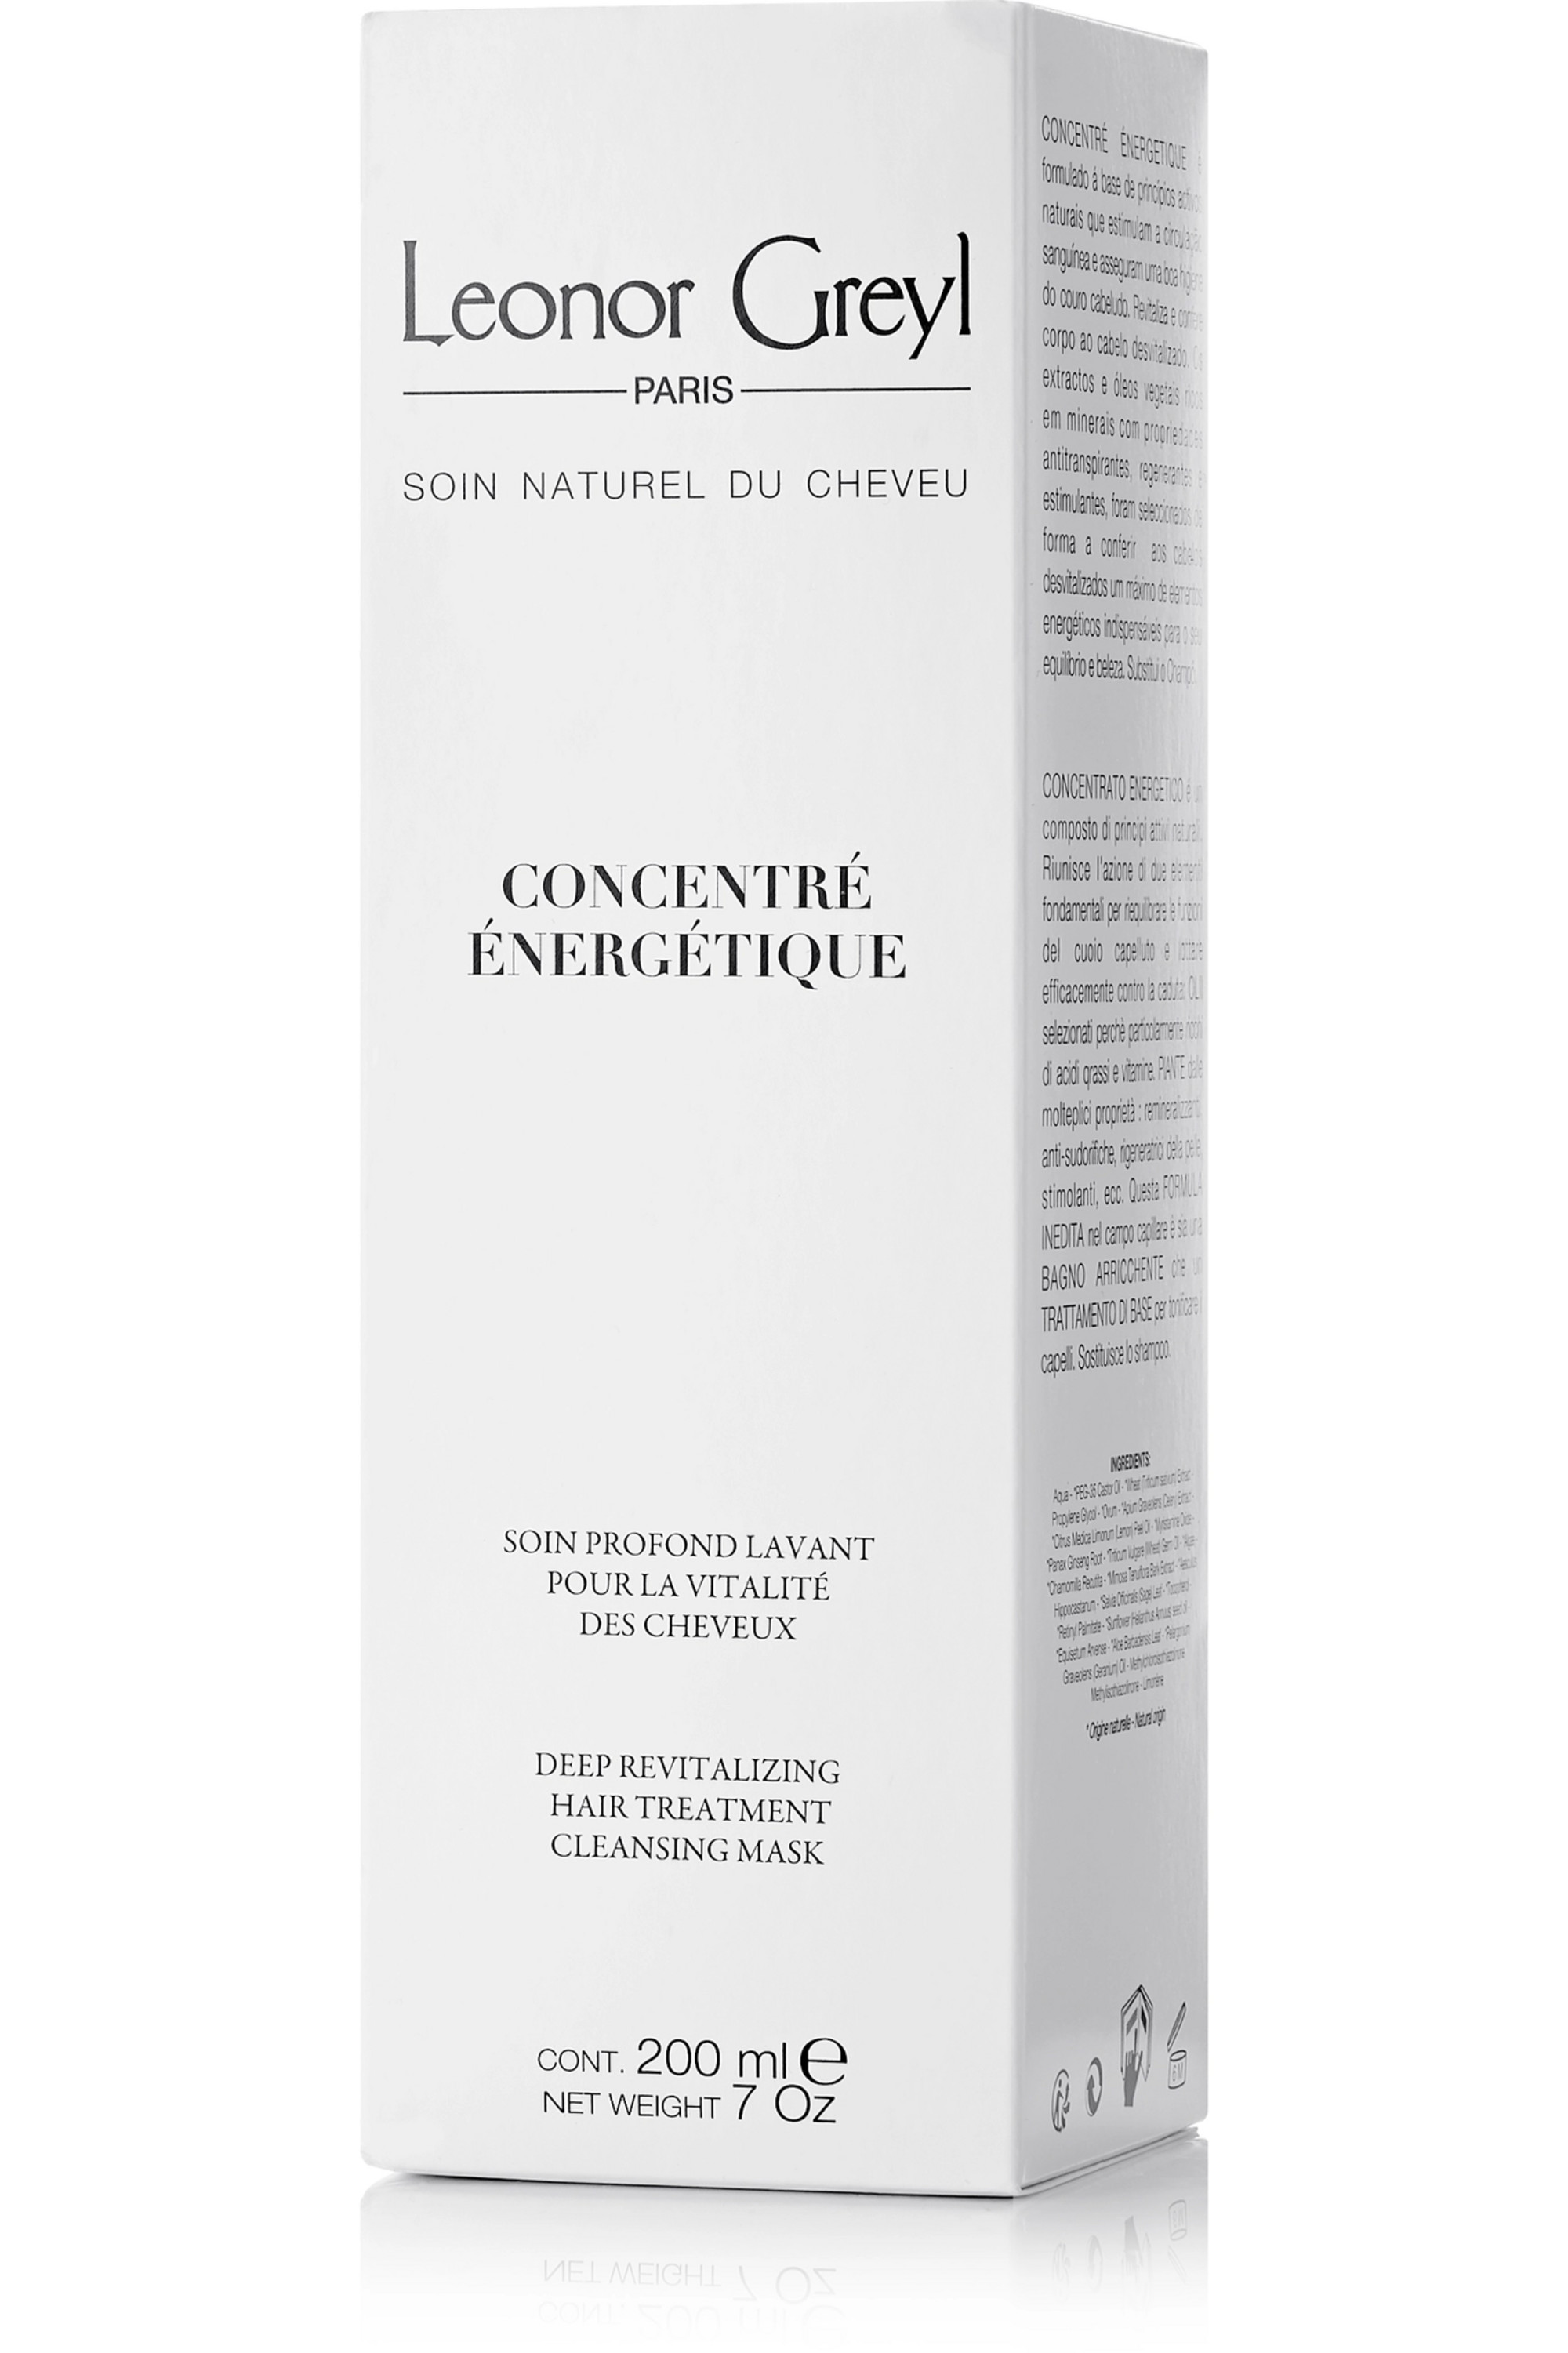 Leonor Greyl Paris Concentré Énergétique Hair Treatment Mask, 200ml